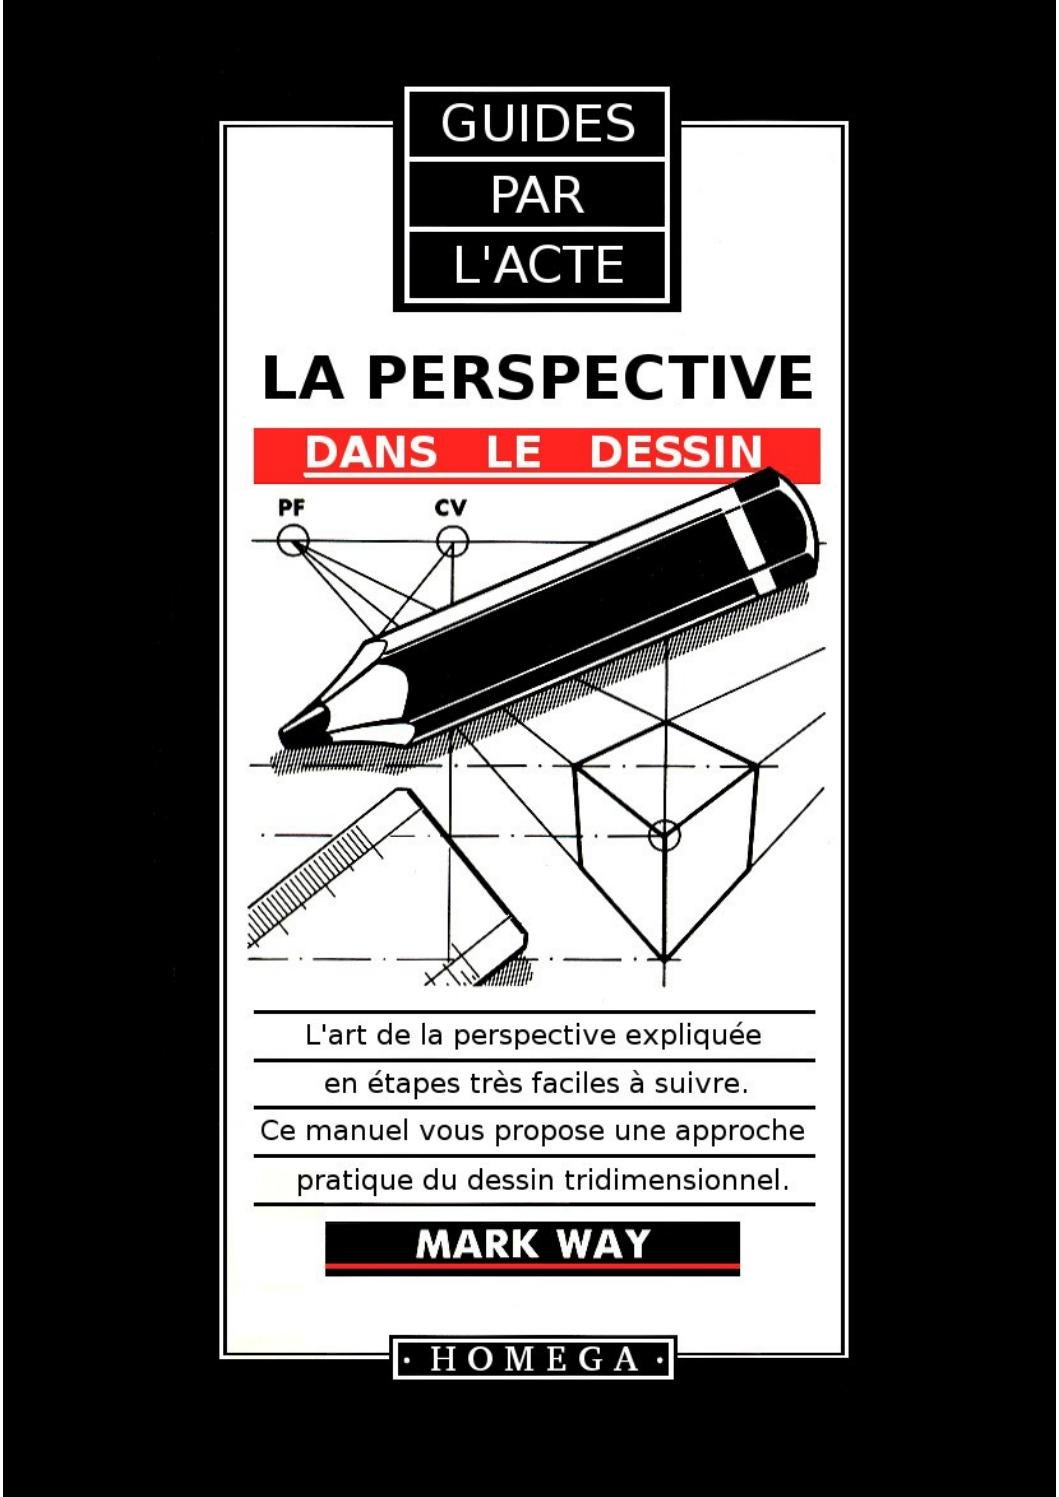 La Perspective Dans Le Dessin De Mark Way By Gitem Issuu